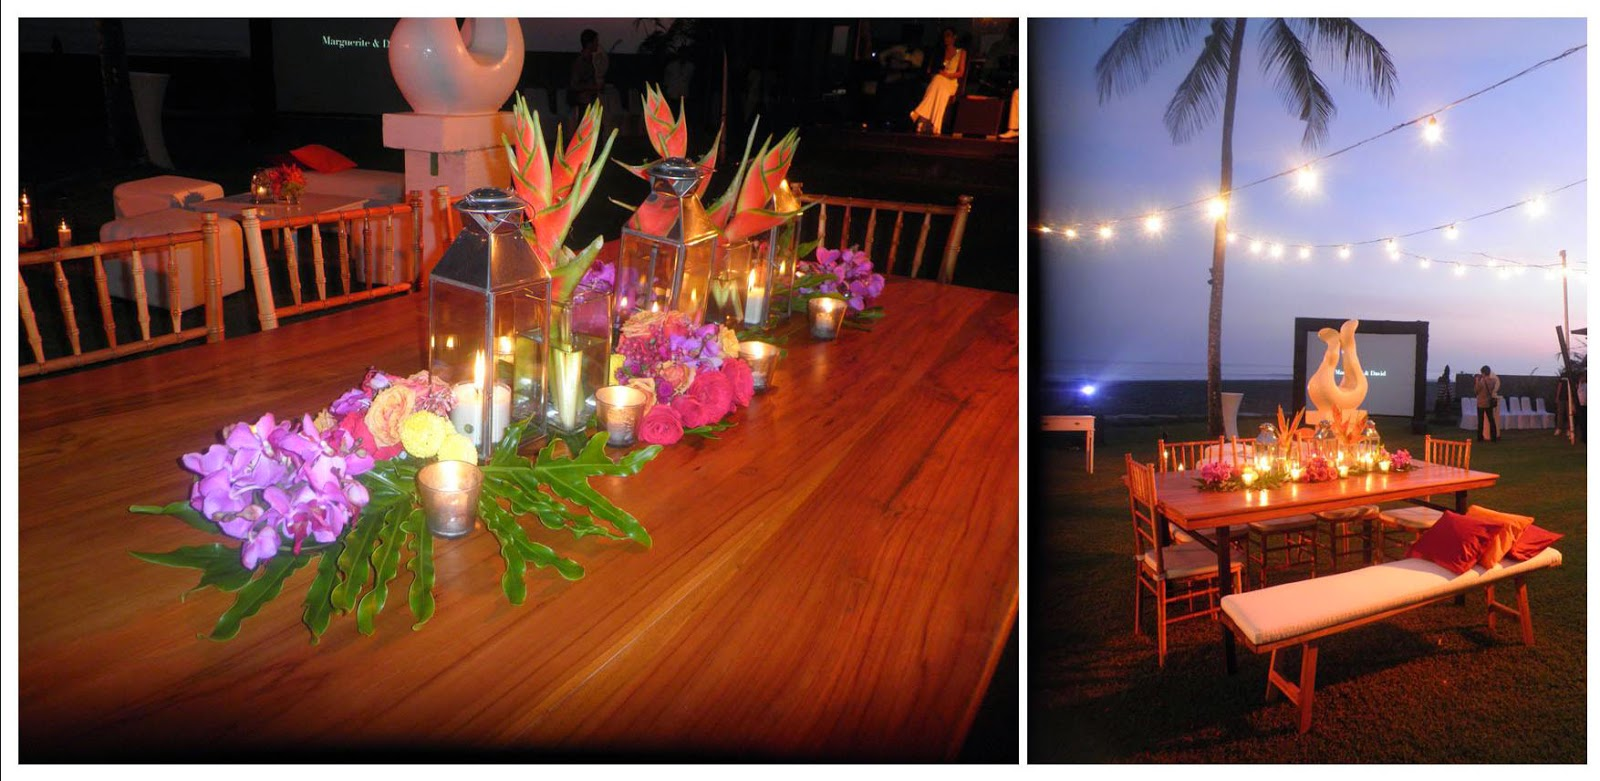 dinner table centerpieces & dinner seating arrangement